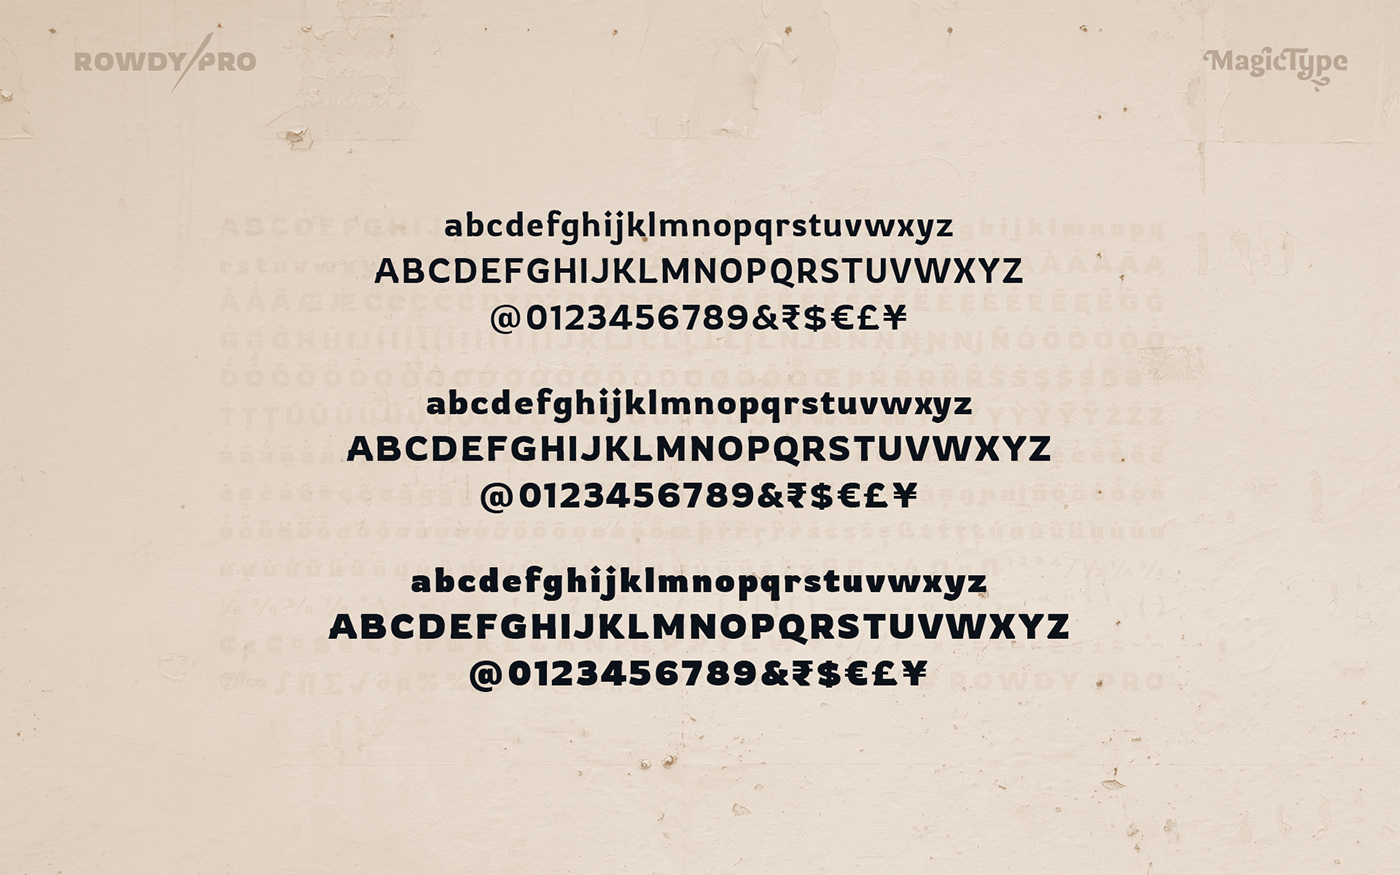 rowdy Typeface Display font Latin India rough grunge Bollywood action